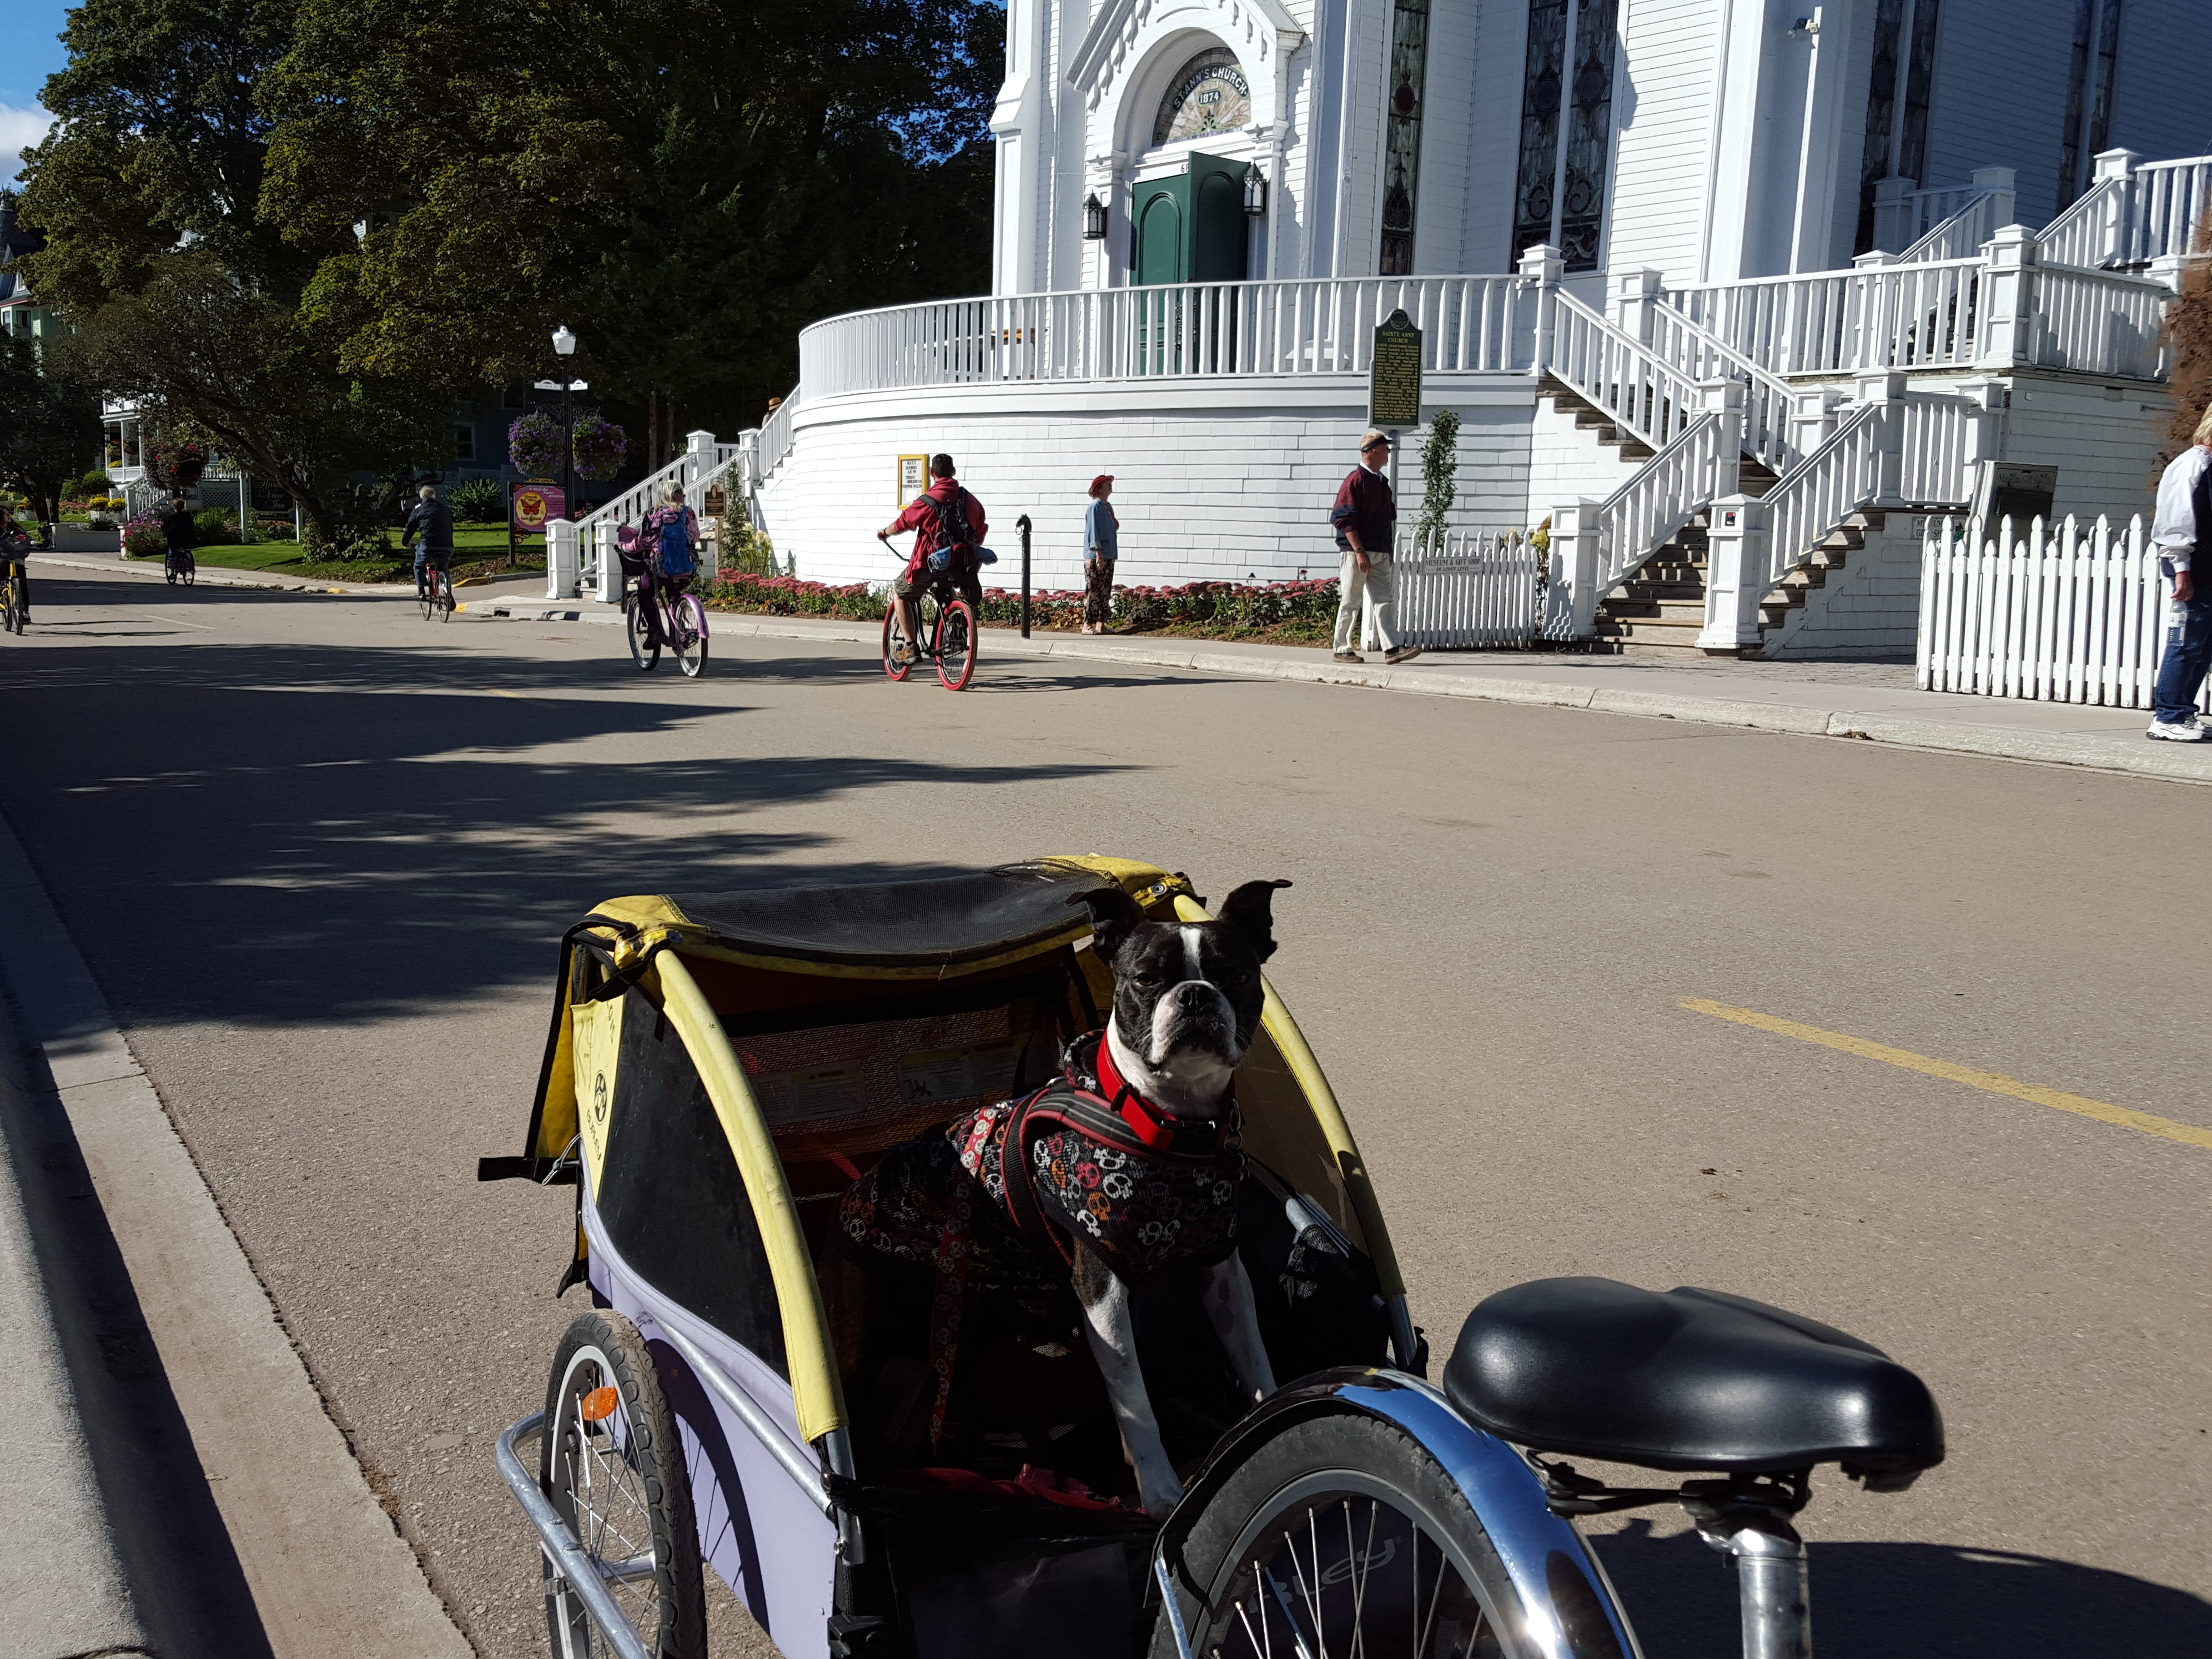 Hotels On Mackinac Island That Allow Dogs